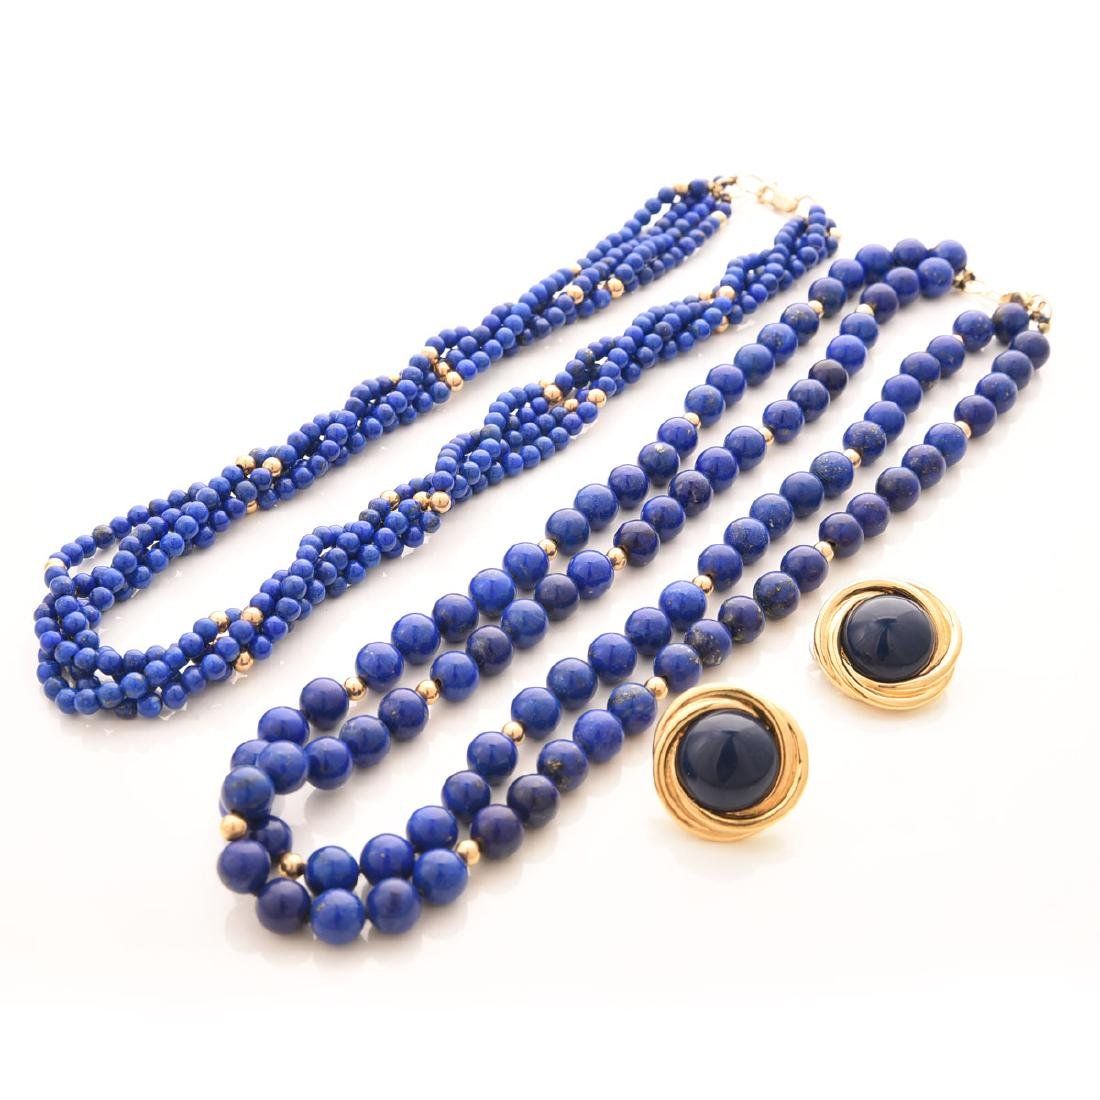 Collection of Lapis Necklaces, together with Trifari